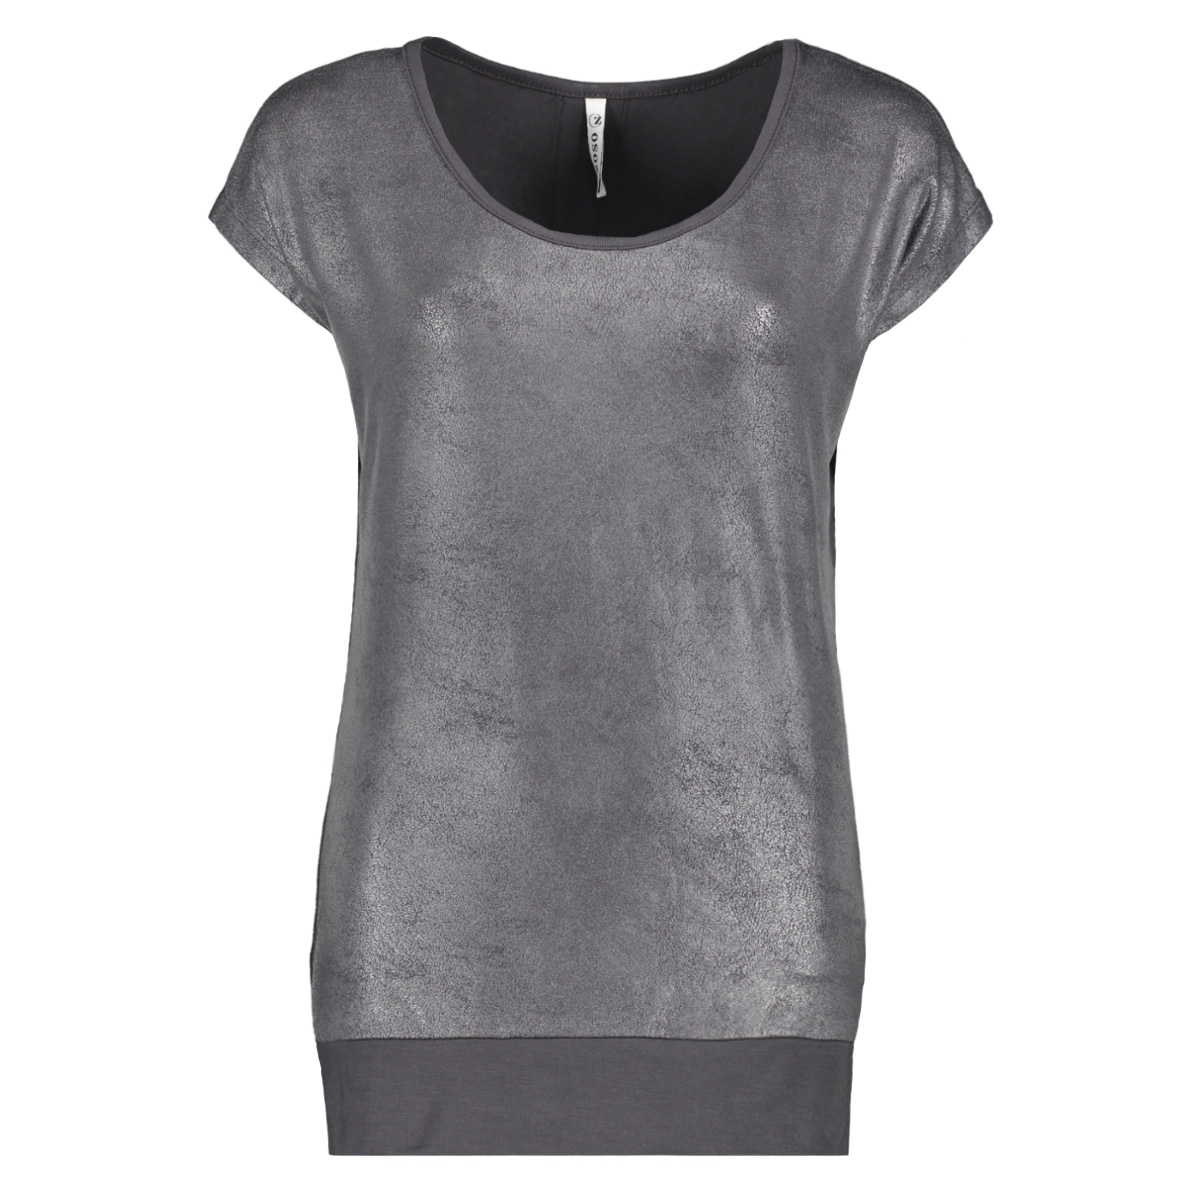 sandy leather look t shirt 201 zoso t-shirt charcoal